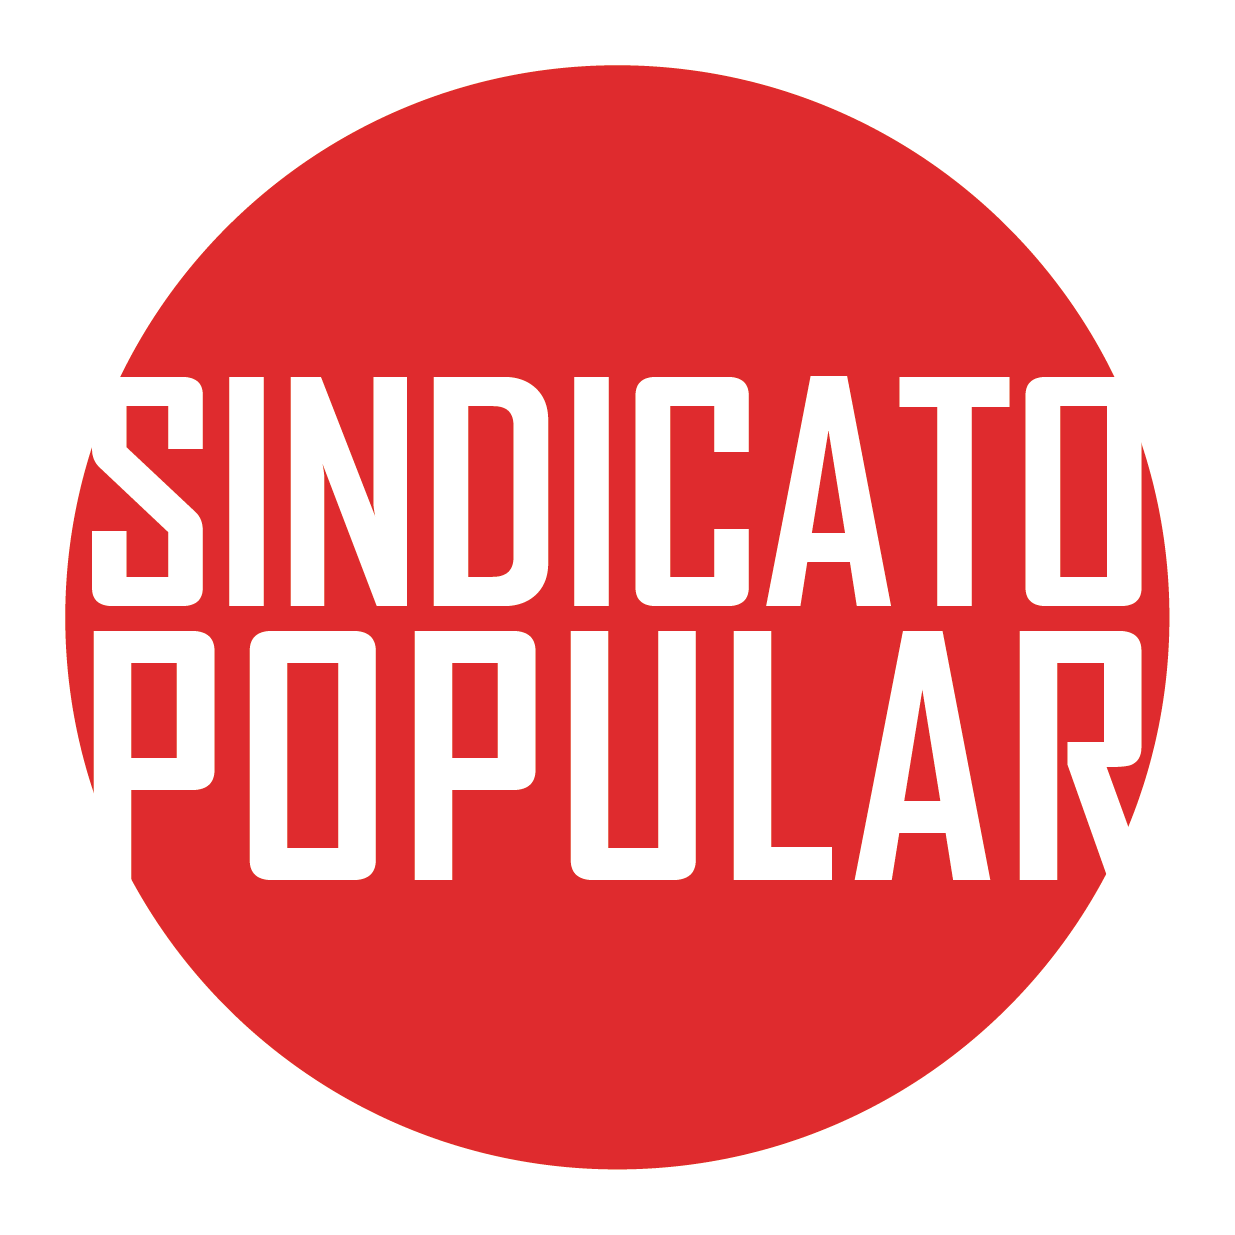 Avatar de Sindicato Popular